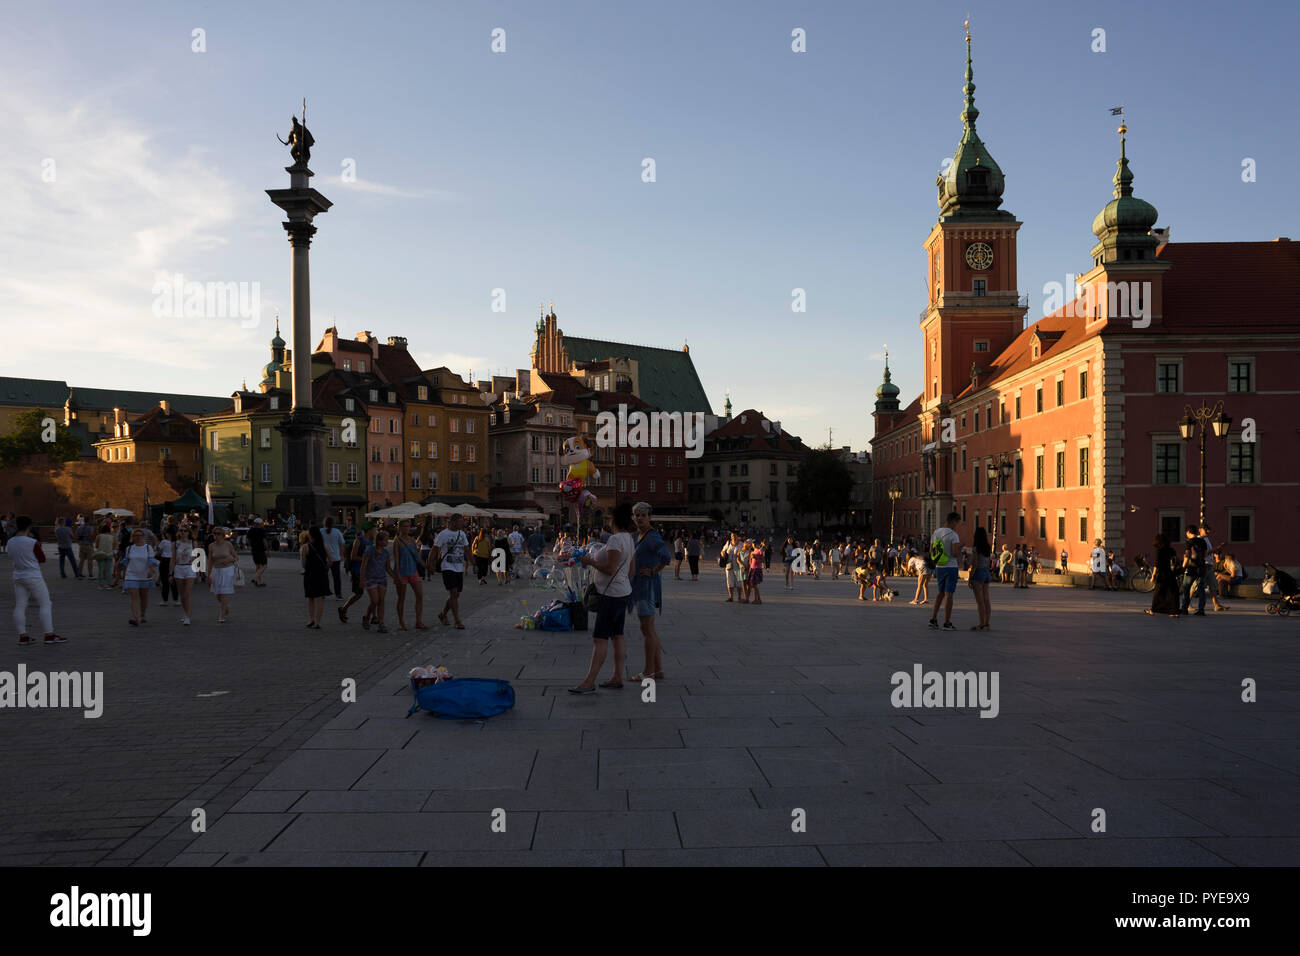 The castle square in Warsaw is a meeting place for tourists and locals who gather here to view street artists and concerts, Poland 2018. - Stock Image